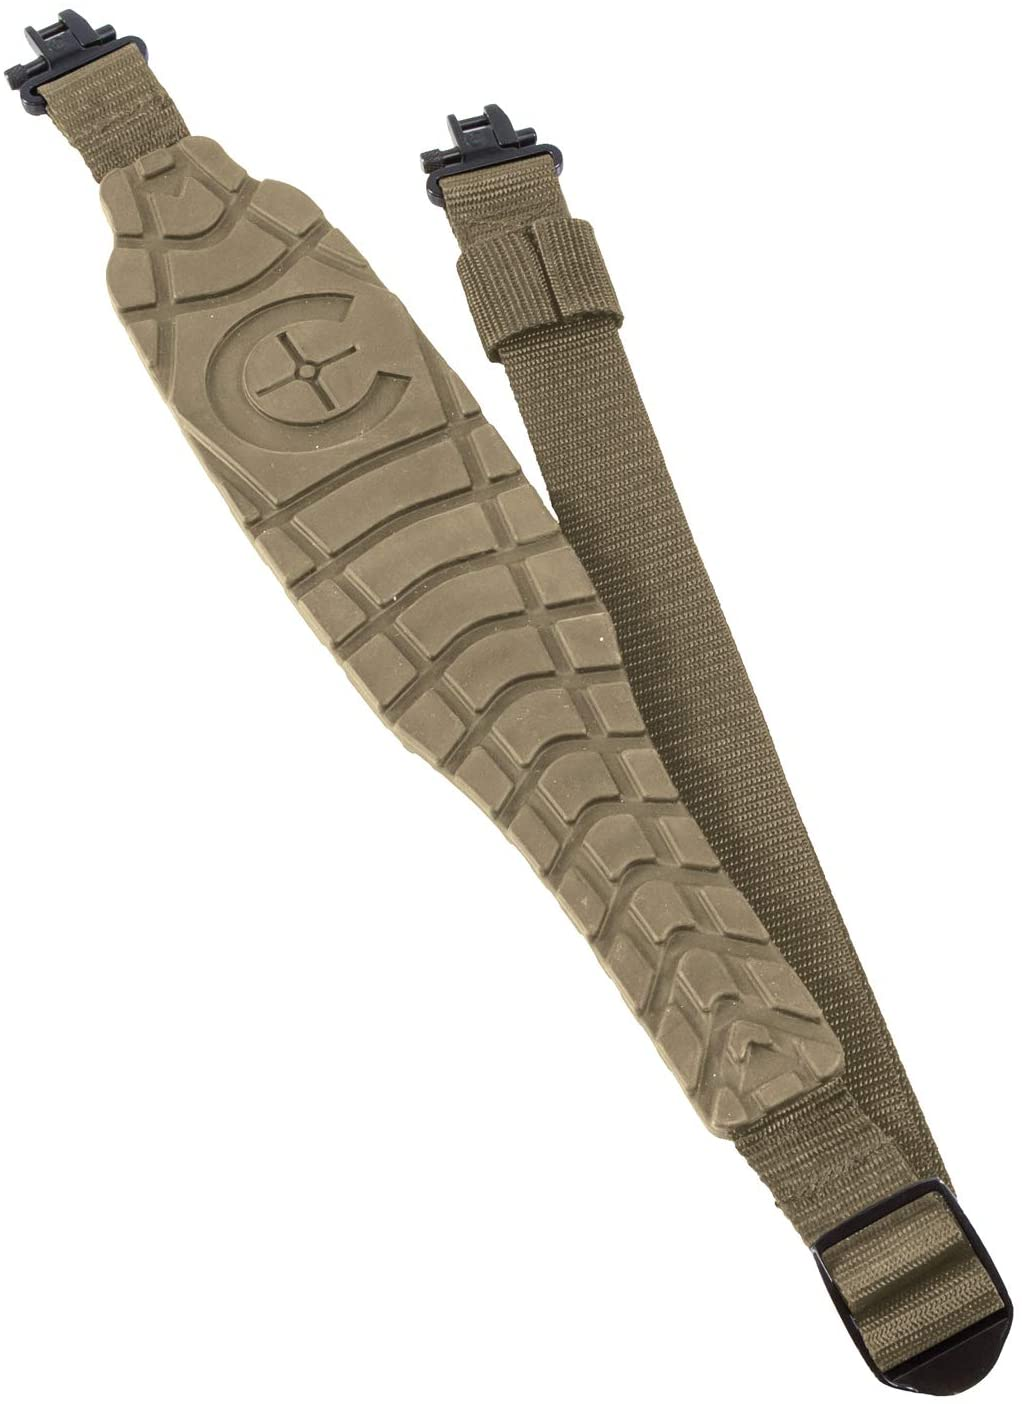 Caldwell Max Grip Sling with Heavy Duty, Moisture Free Construction and Quick Detach Clasps for Outdoor, Range, Shooting and Hunting